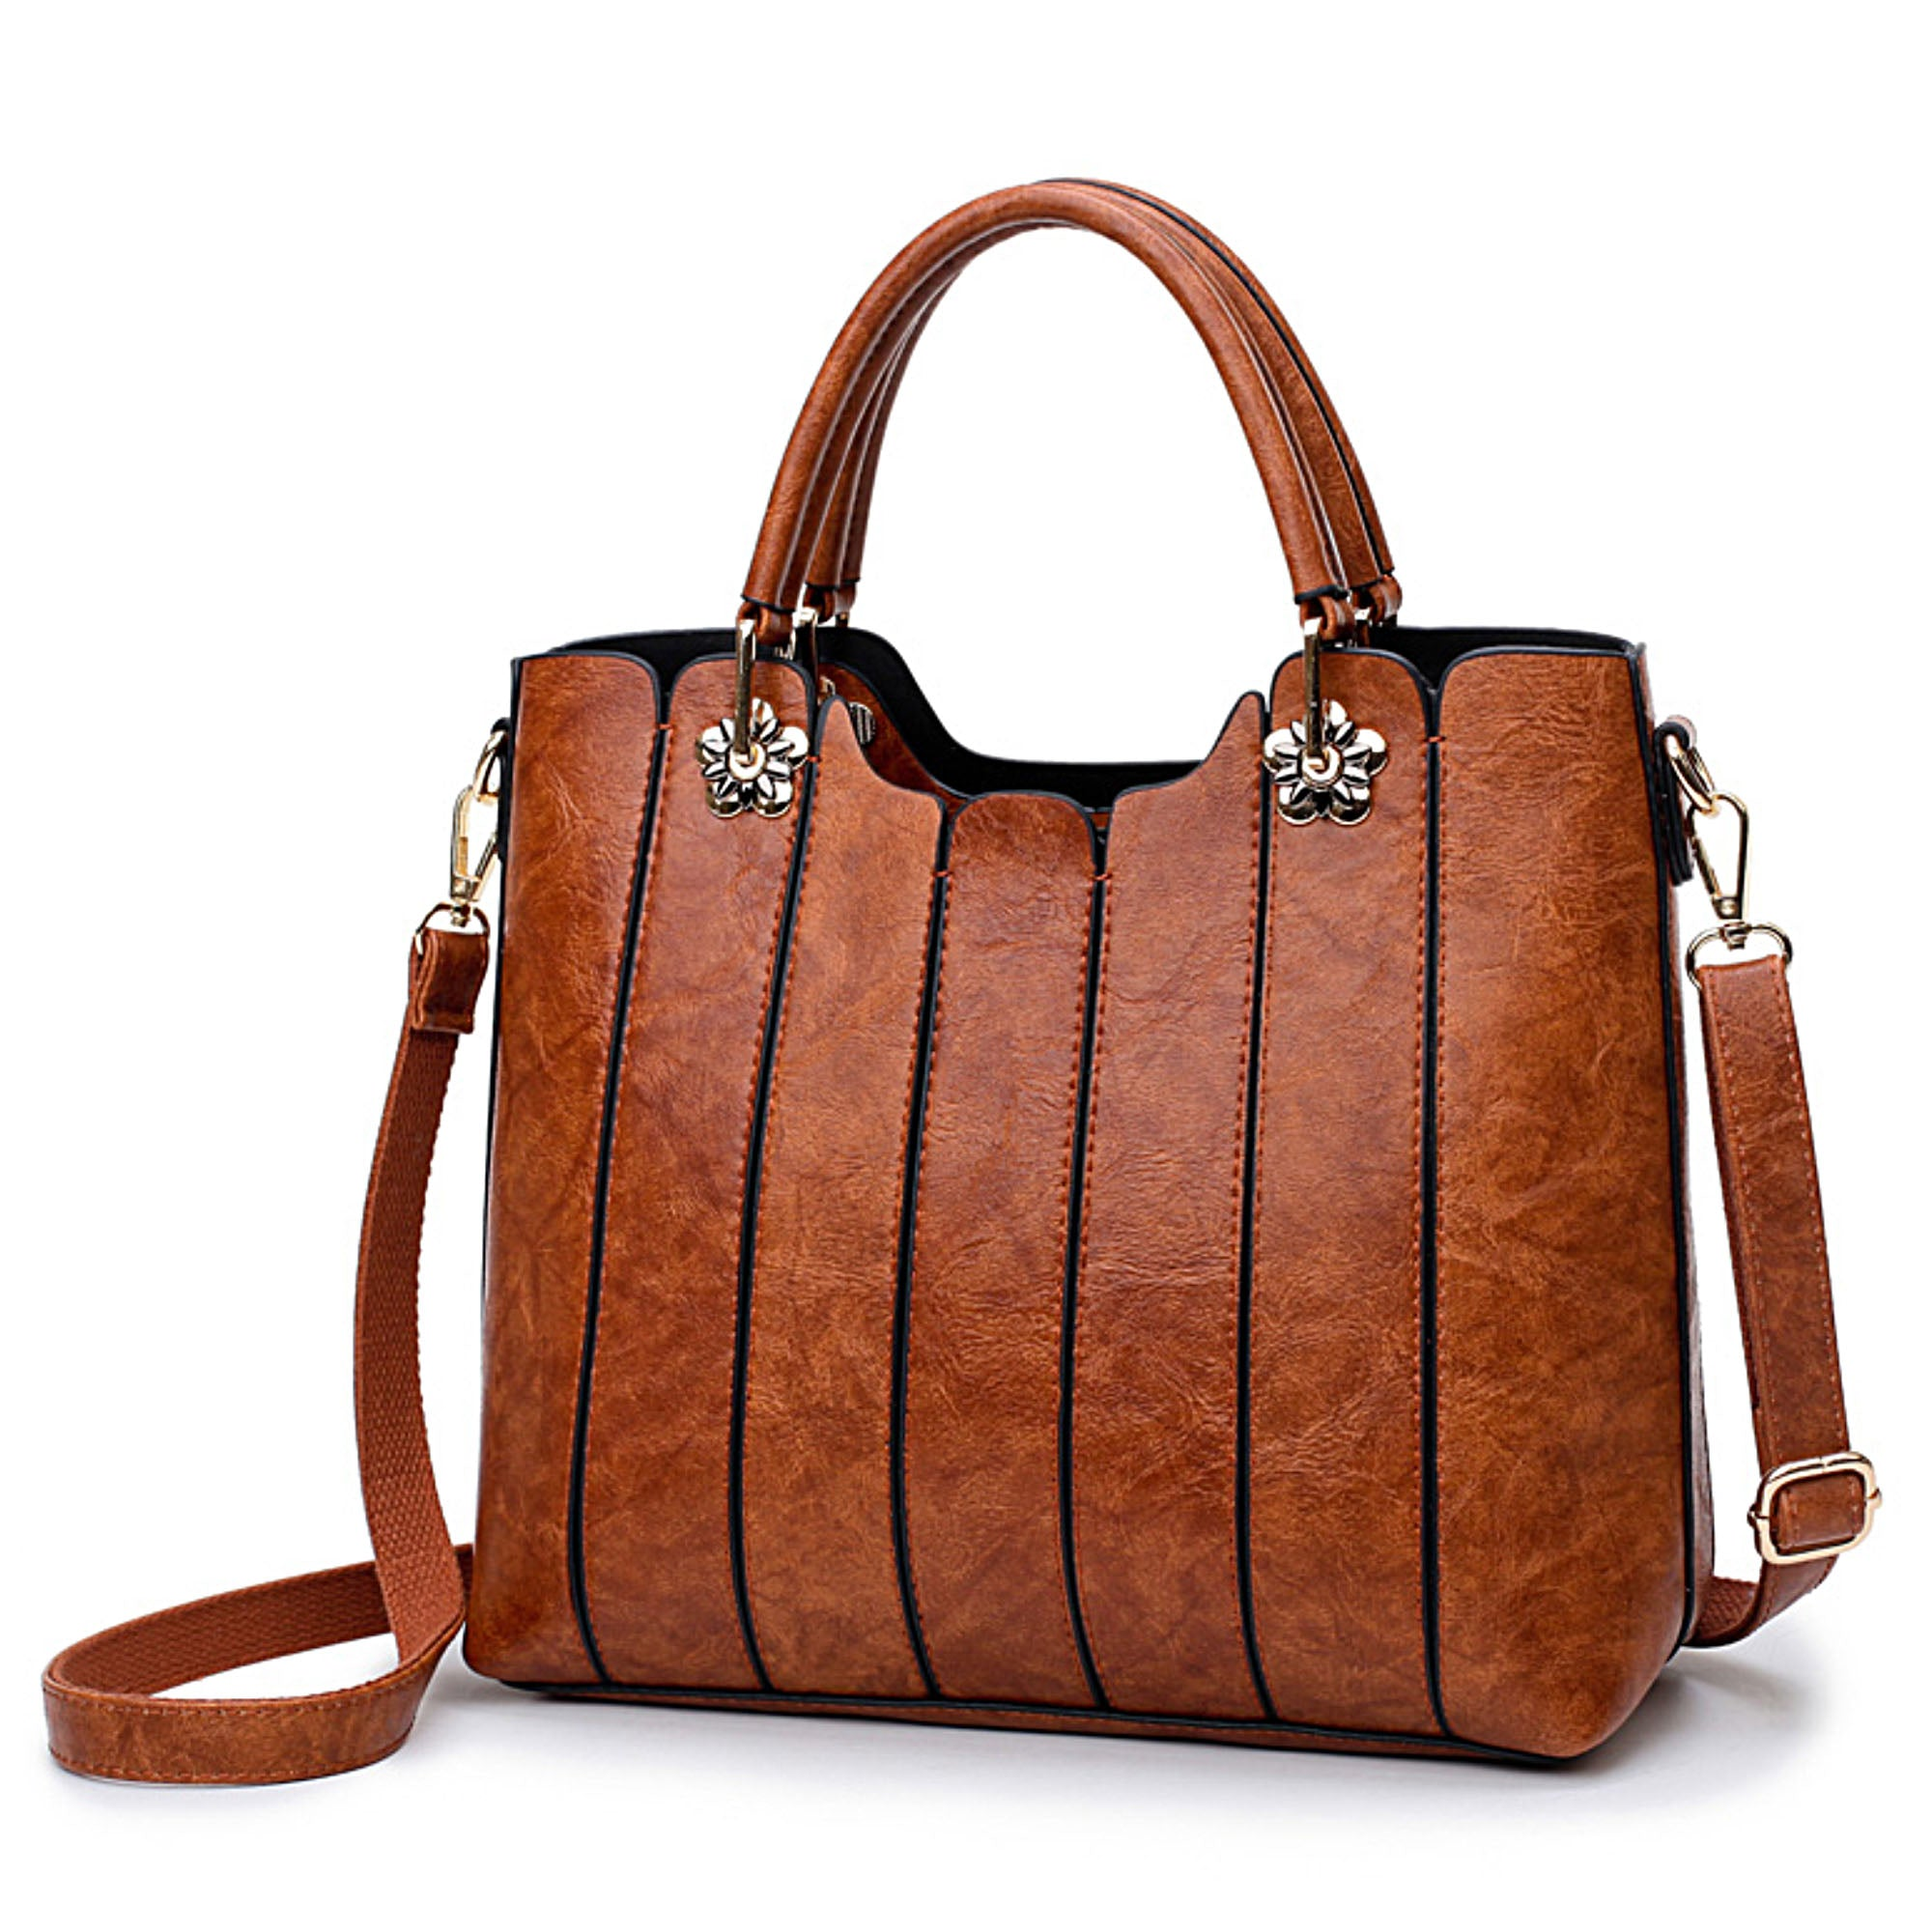 Leather Bag with Top Handles - Women Handbag and Purse